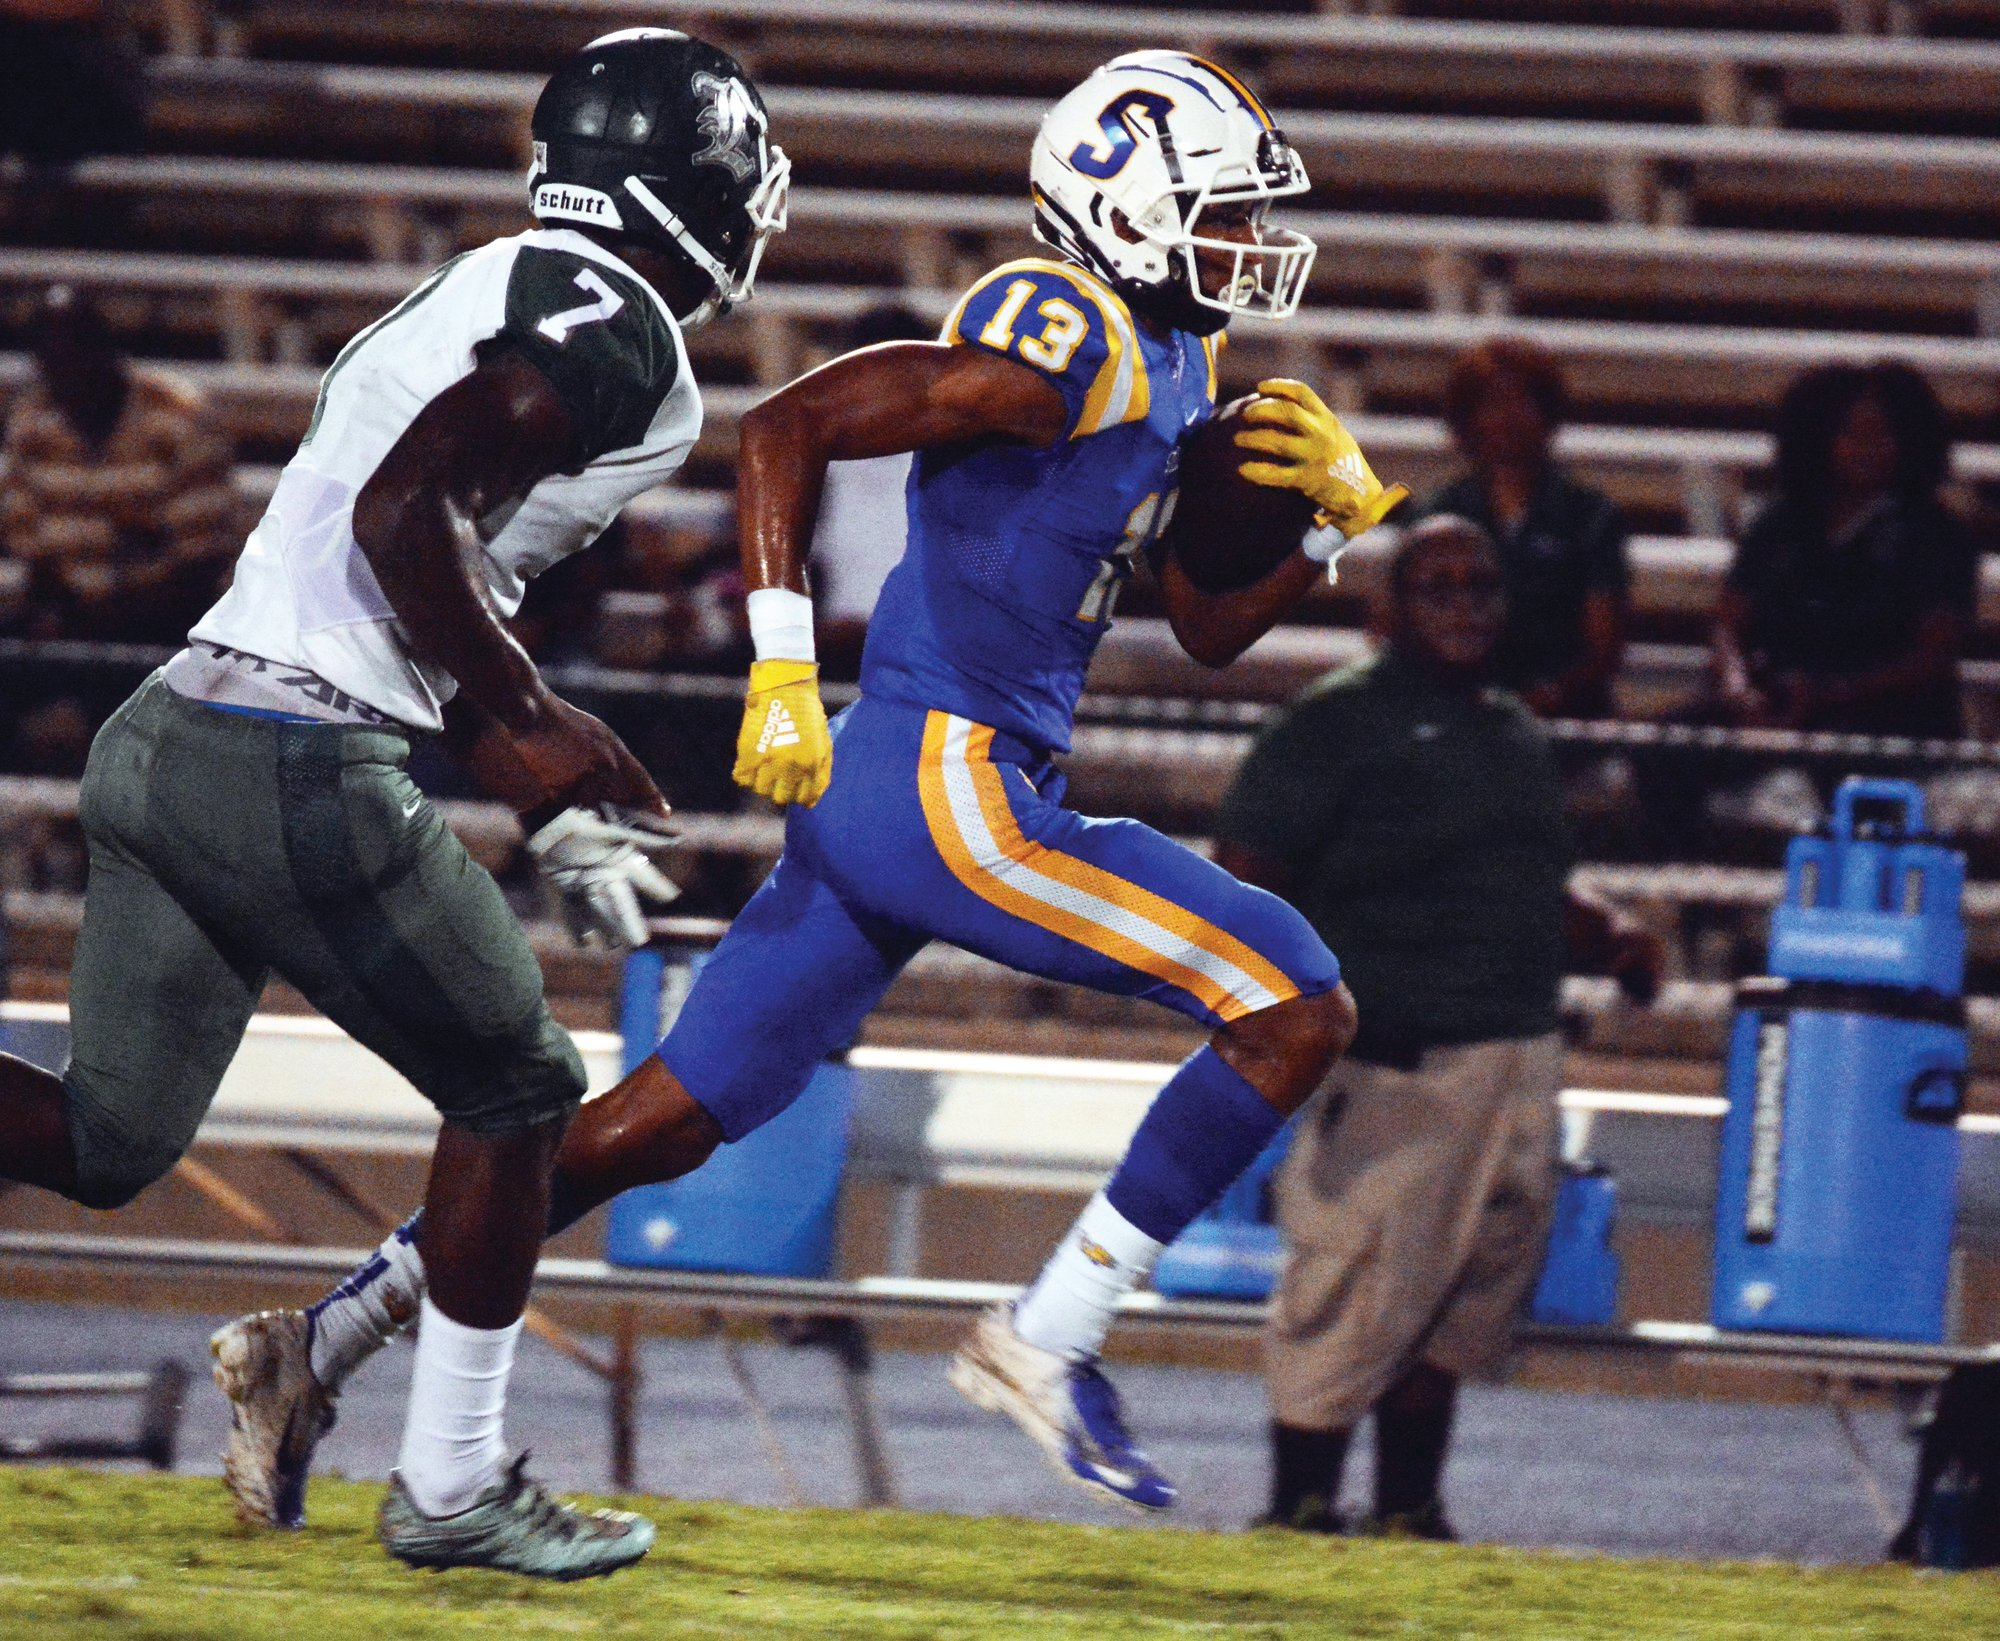 TIM LEIBLE / THE SUMTER ITEMSumter High School wide receiver Tylee Craft (13) and defensive back teammate O'Donnell Fortune have been selected to play for South Carolina in the Shrine Bowl in December.